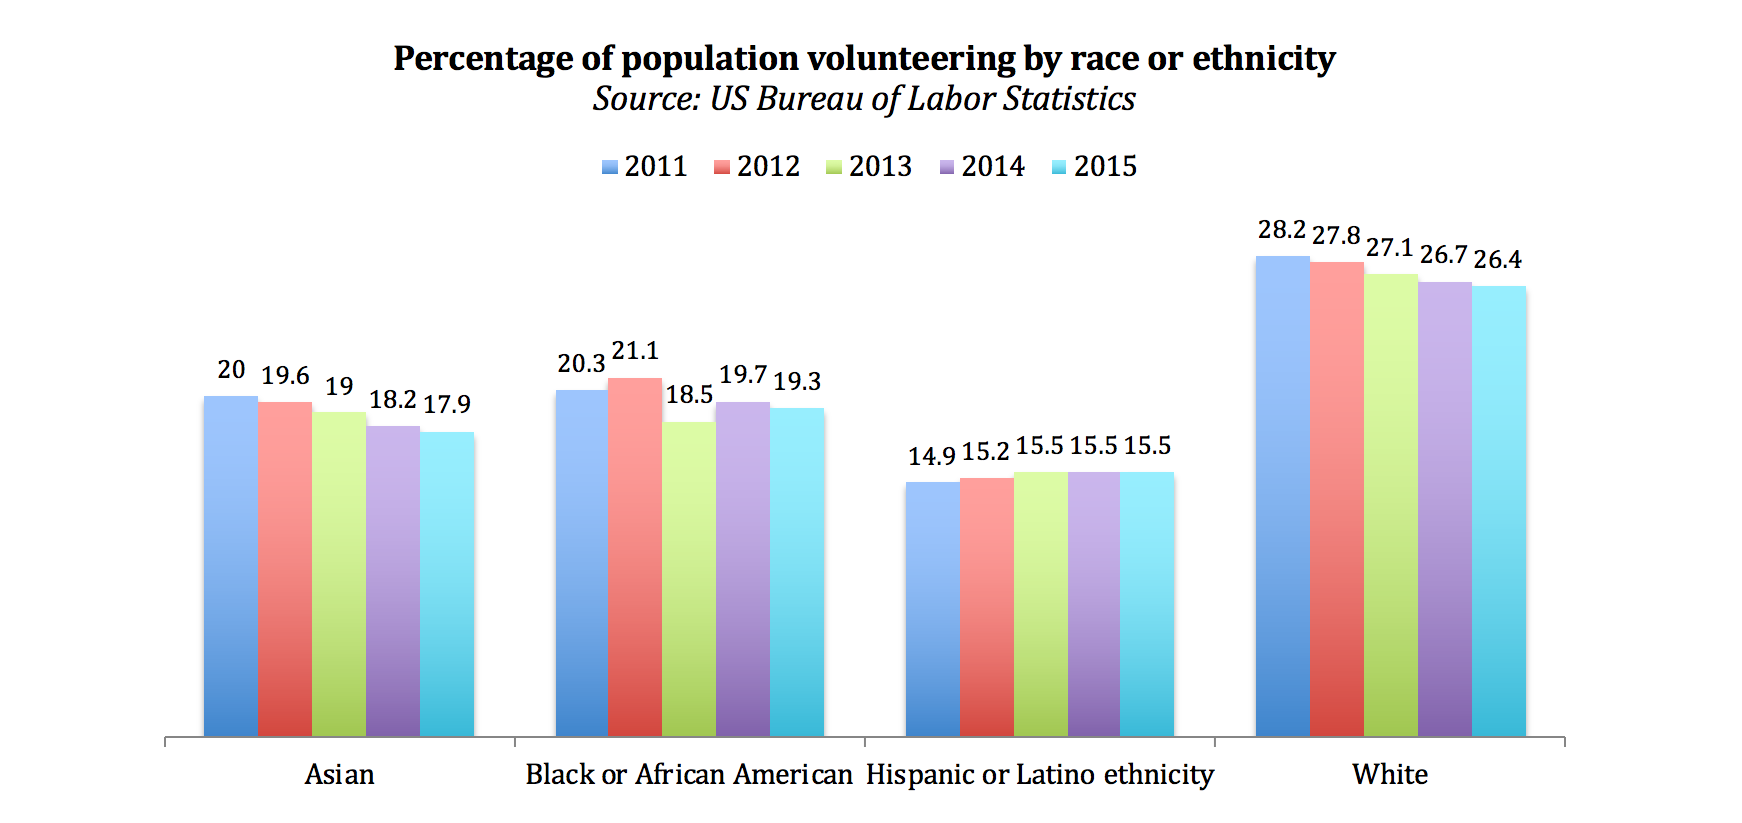 Figure 6: Percentage of population volunteering by race or ethnicity